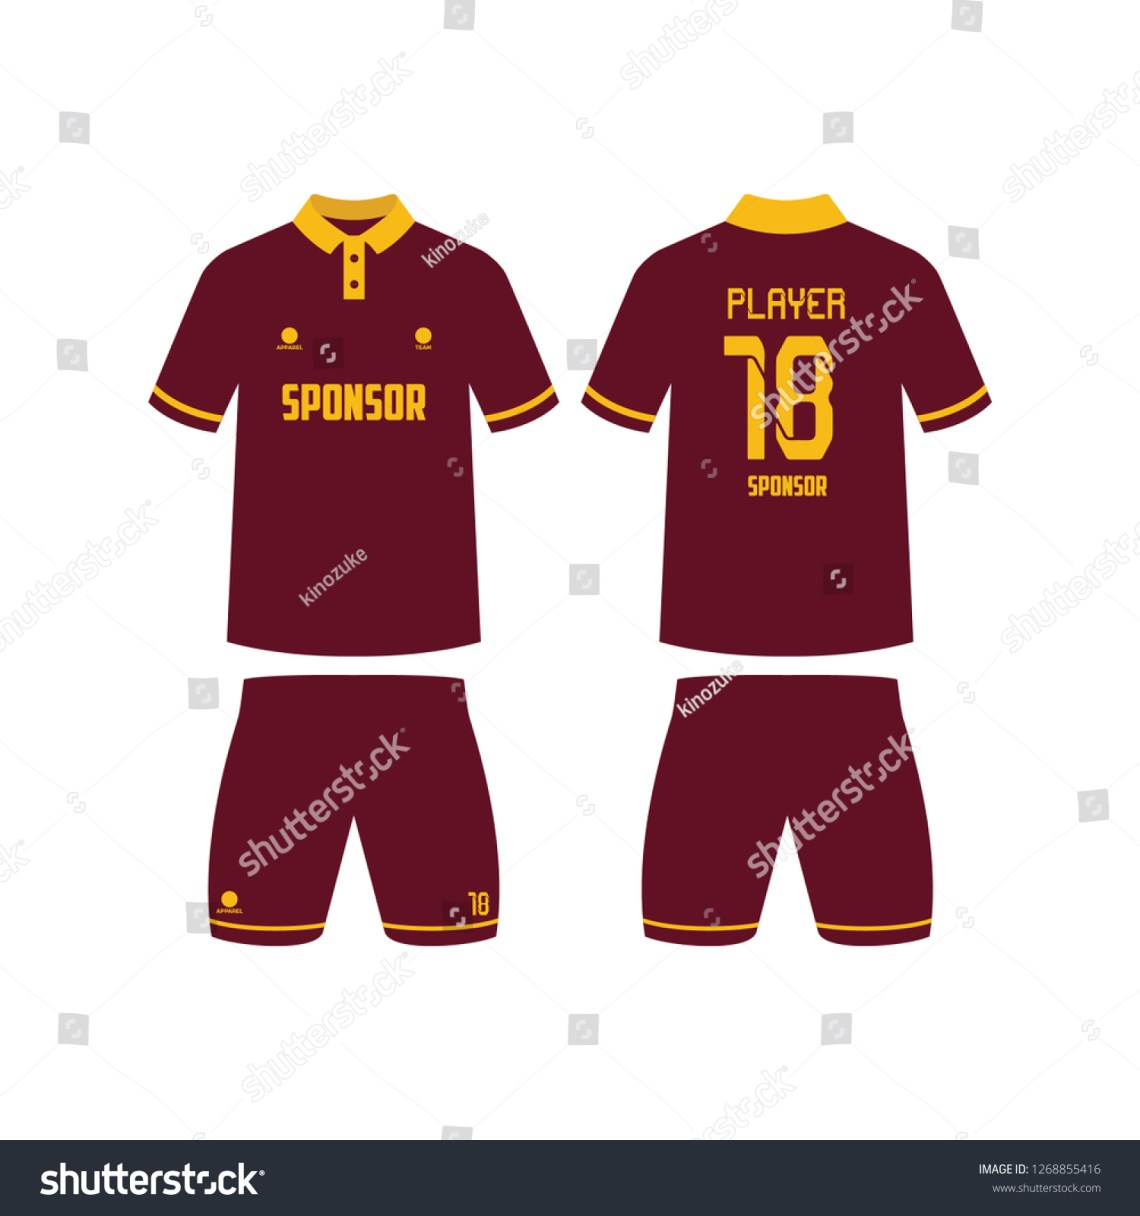 Download View 49+ 42+ Template Mockup Jersey Futsal Pictures cdr